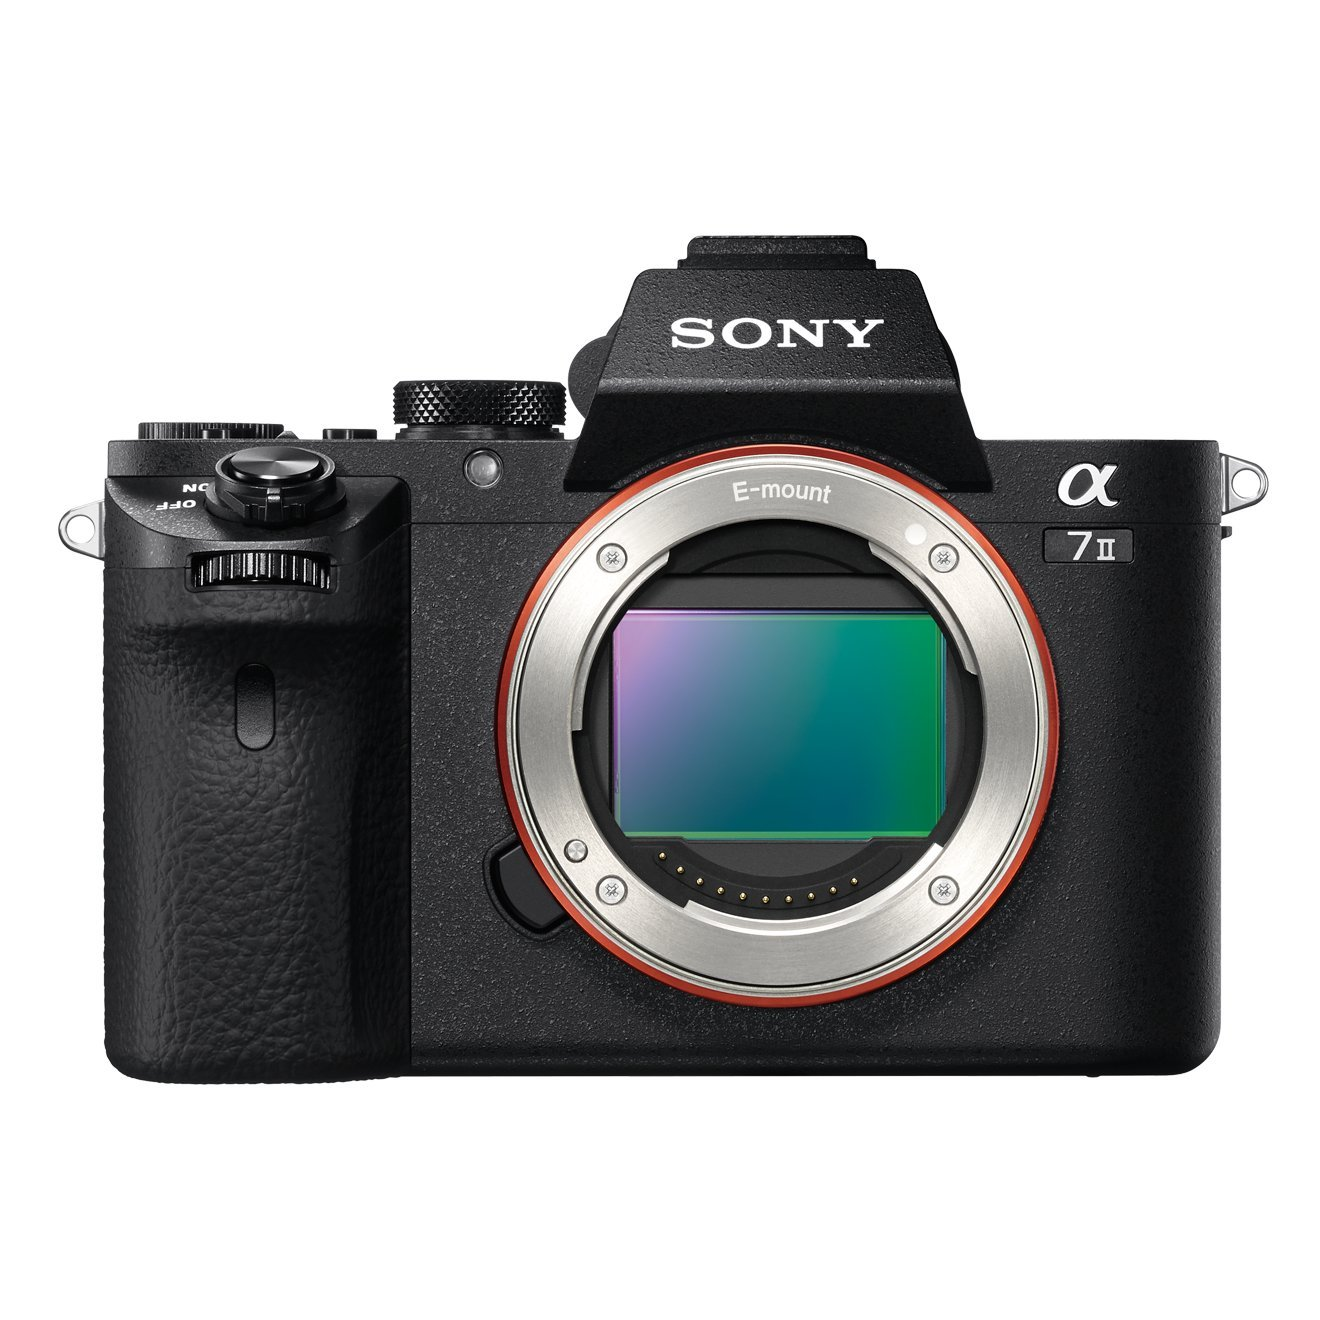 Sony Alpha 7M2 E-Mount Vollformat Digitalkamera